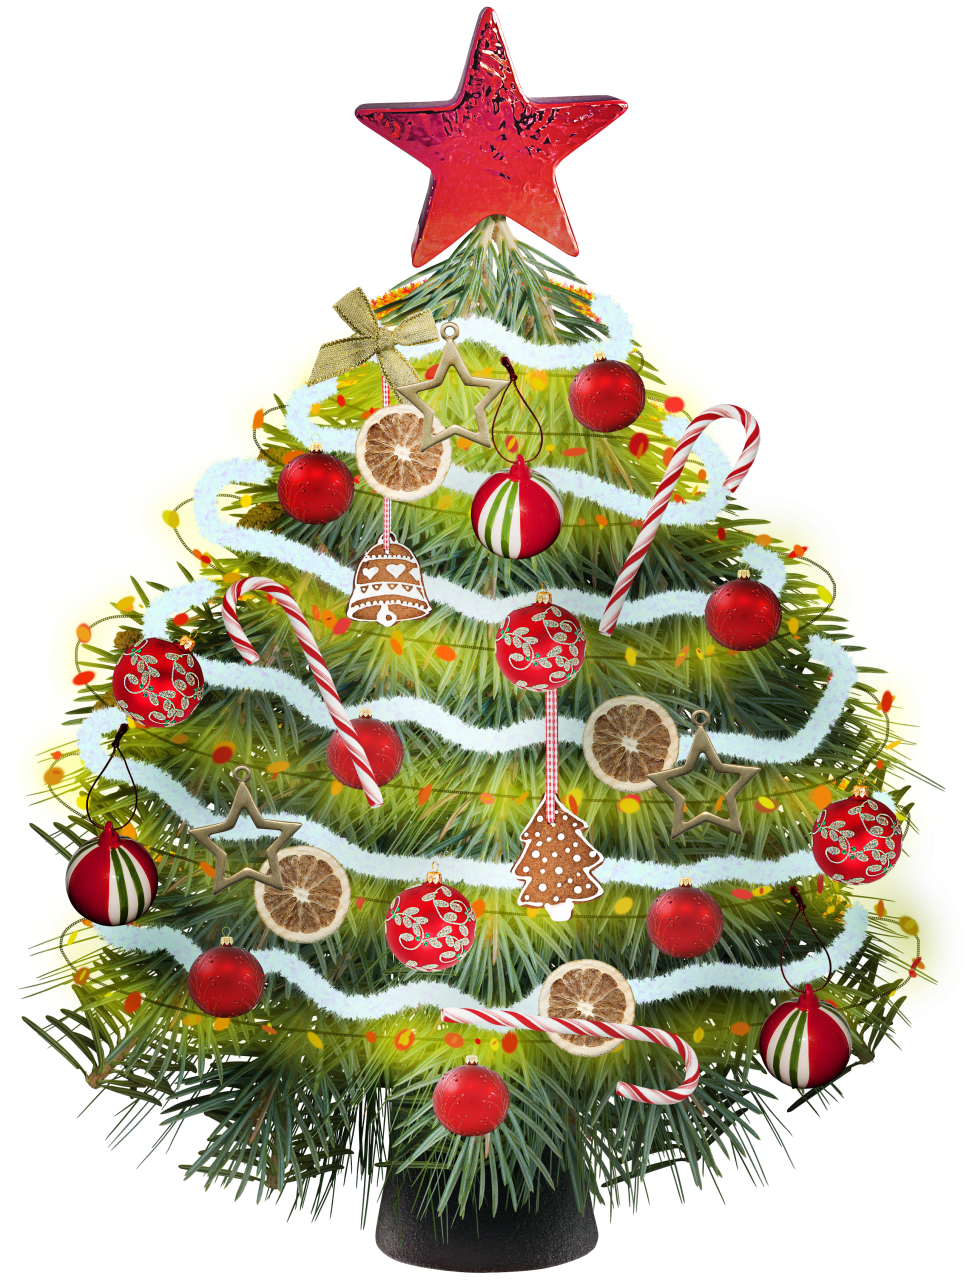 Christmas tree clipart with colorful christmas toys image #10012.